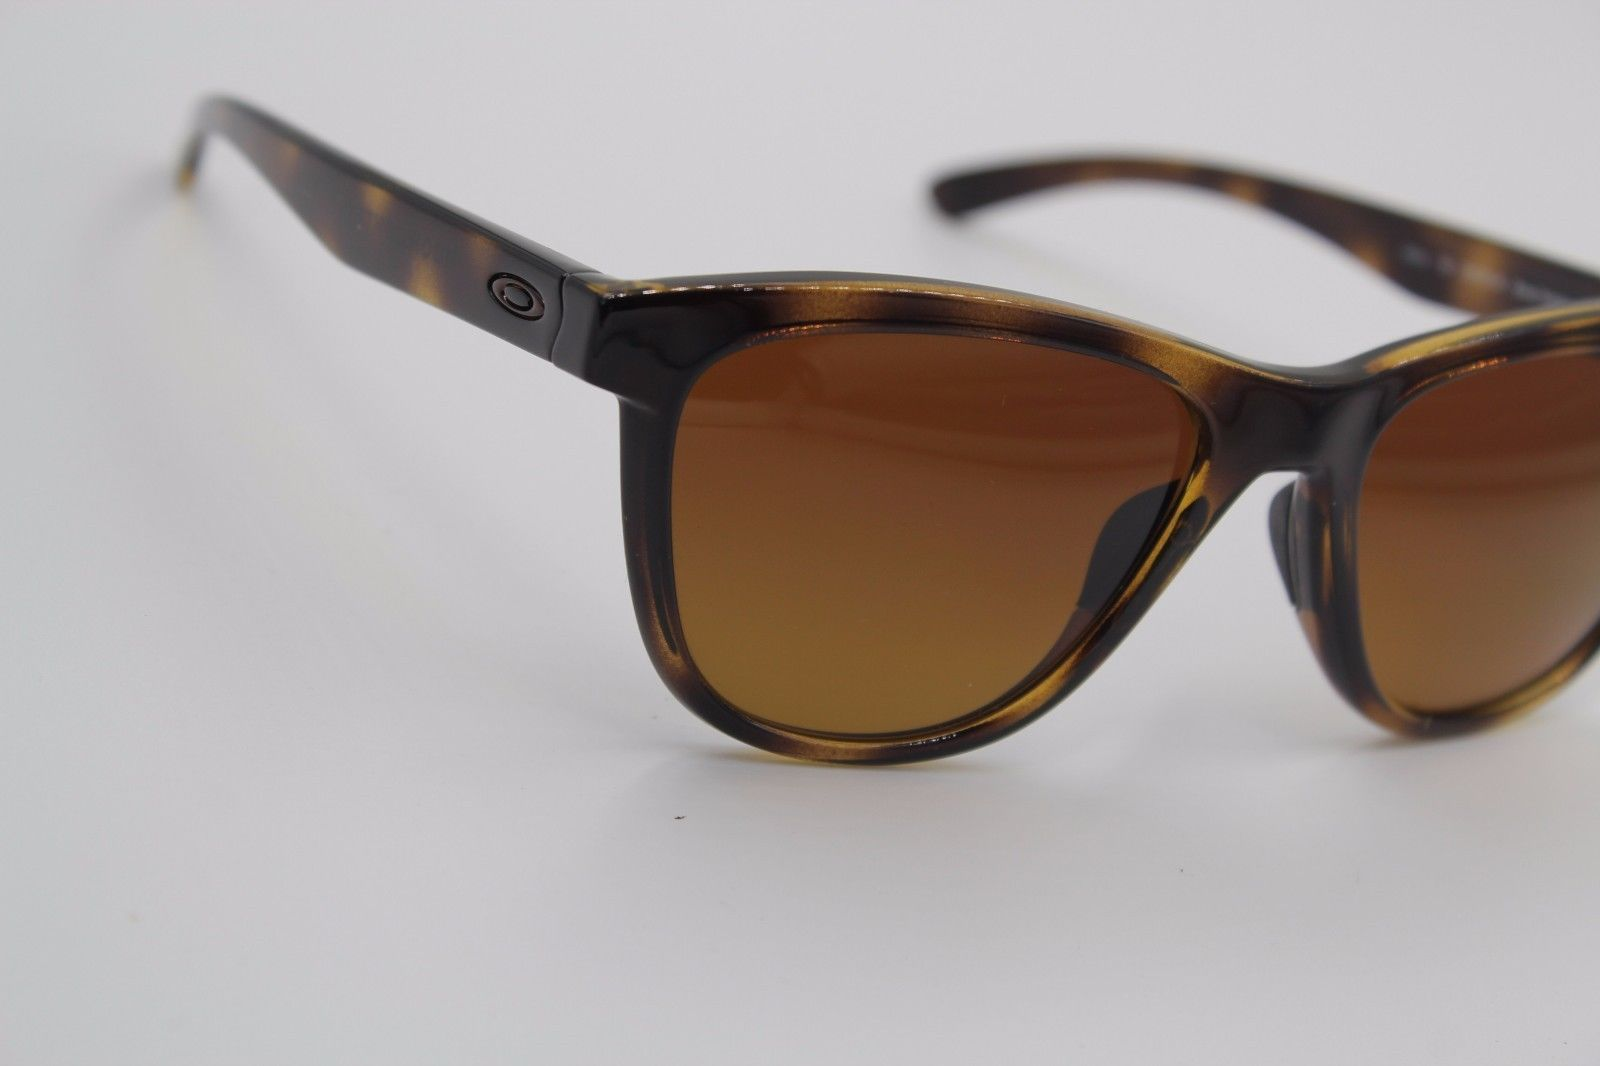 667a2968177 NEW OAKLEY OO9320-04 TORTOISE MOONLIGHTER POLARIZED AUTHENTIC SUNGLASSES  53-17 !